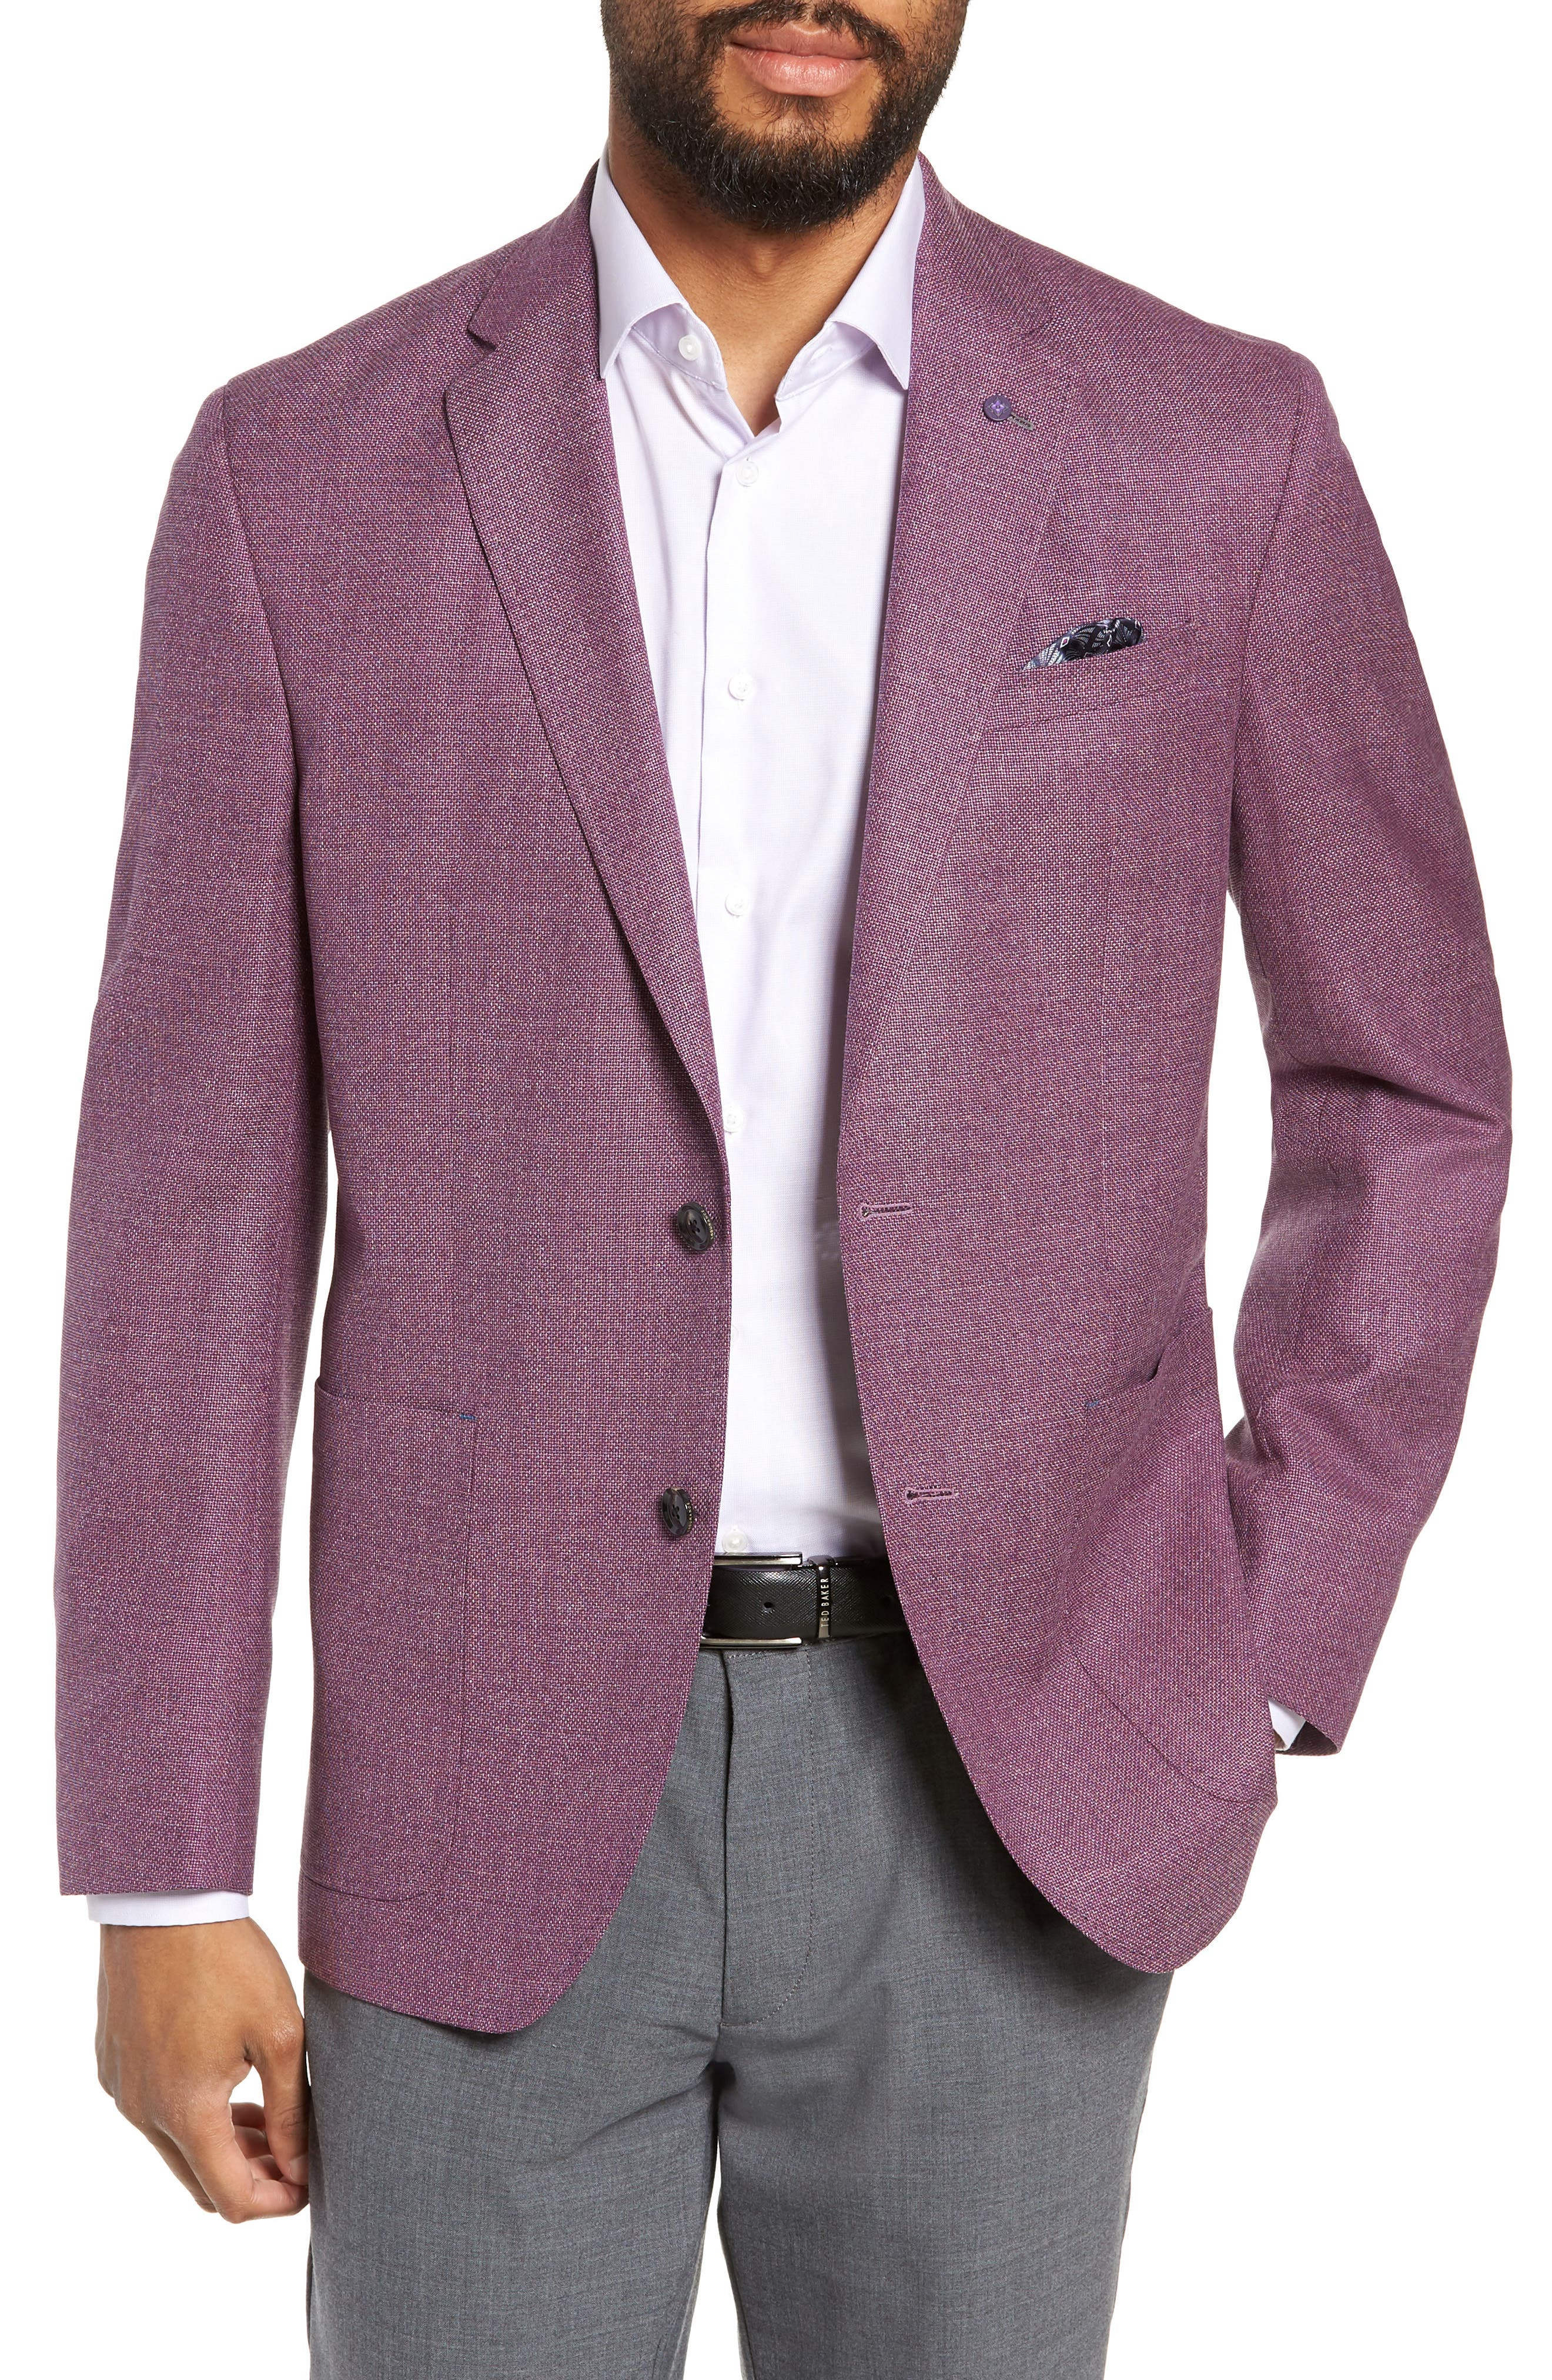 TED BAKER LONDON, Kyle Trim Fit Wool Sport Coat, Main thumbnail 1, color, BERRY